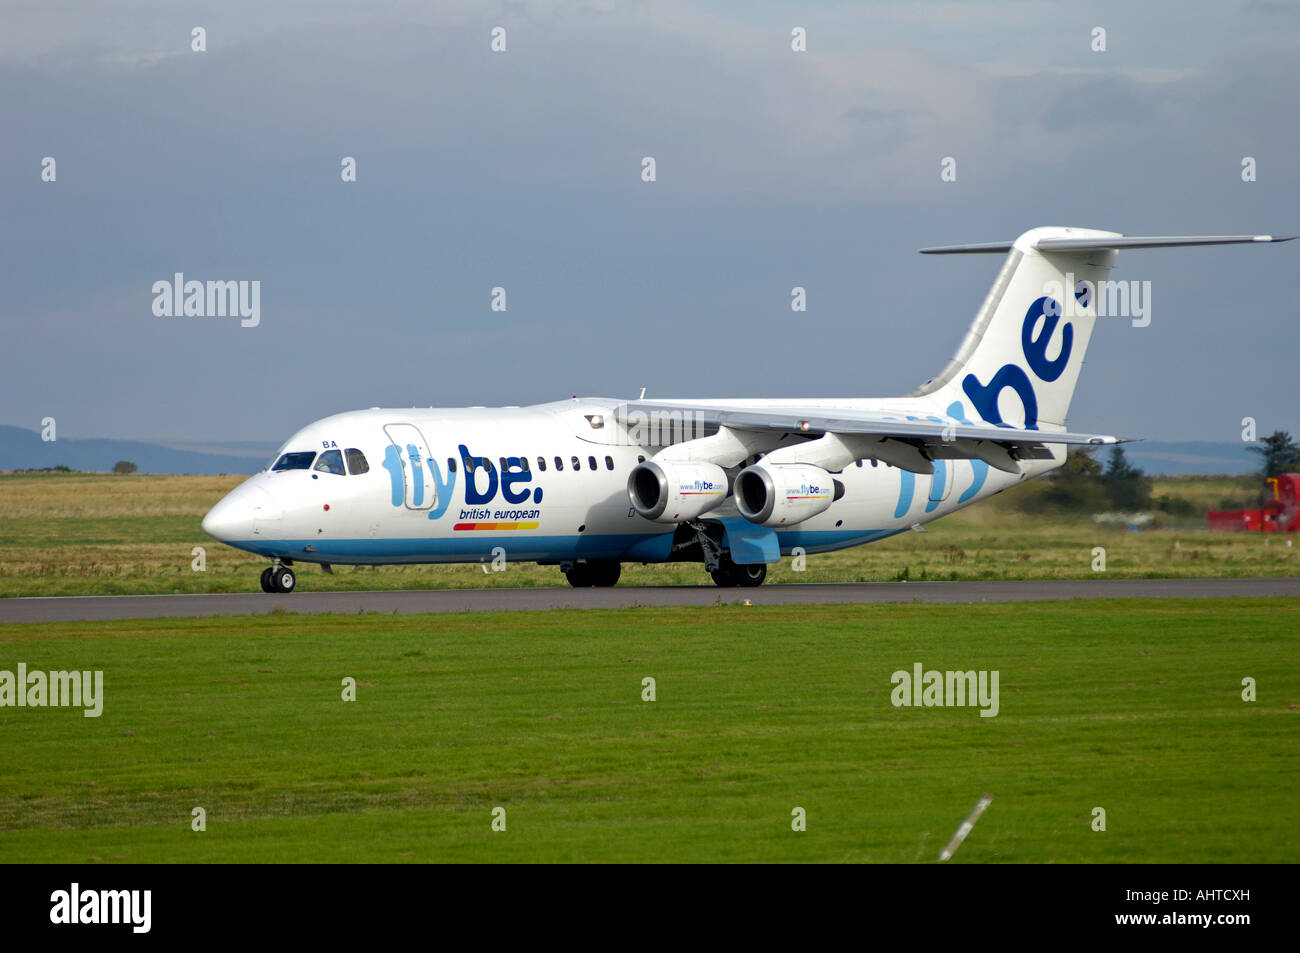 Exeter Based Flybe Aircraft- British European British Aerospace BAe-146-300 on Runway Taxi Way - Stock Image